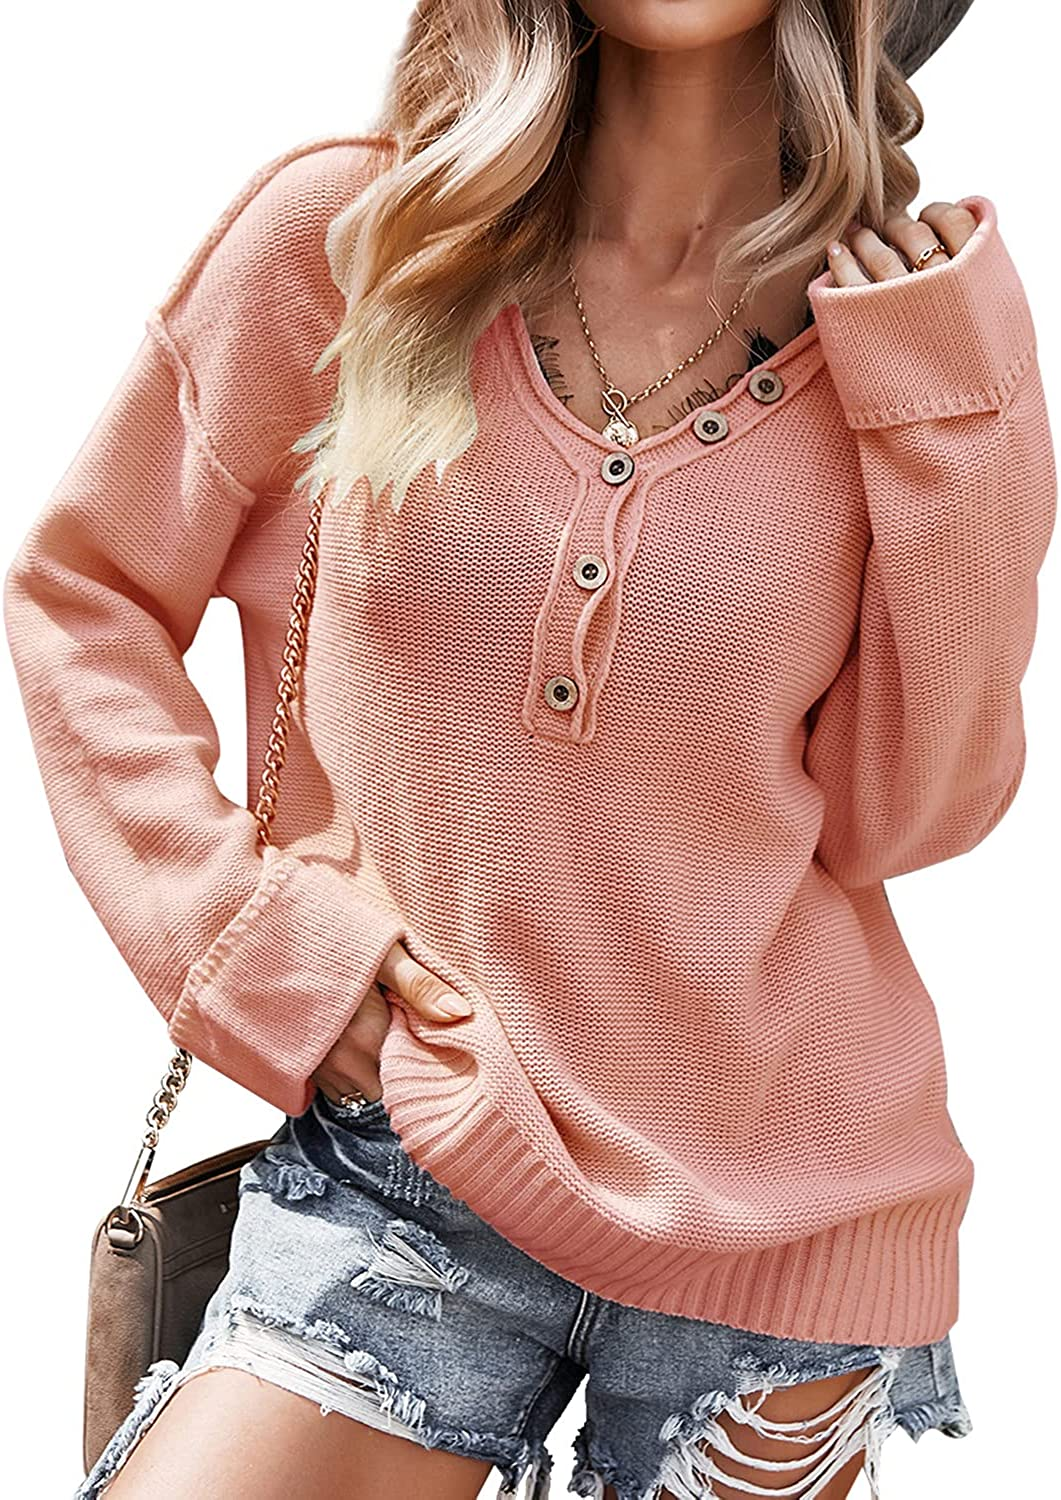 WDSTYLE Women's Long Sleeve V Neck Sweaters Loose Fit Casual Button Knit Pullover Sweater Oversized Sweatshirt Henley Tops